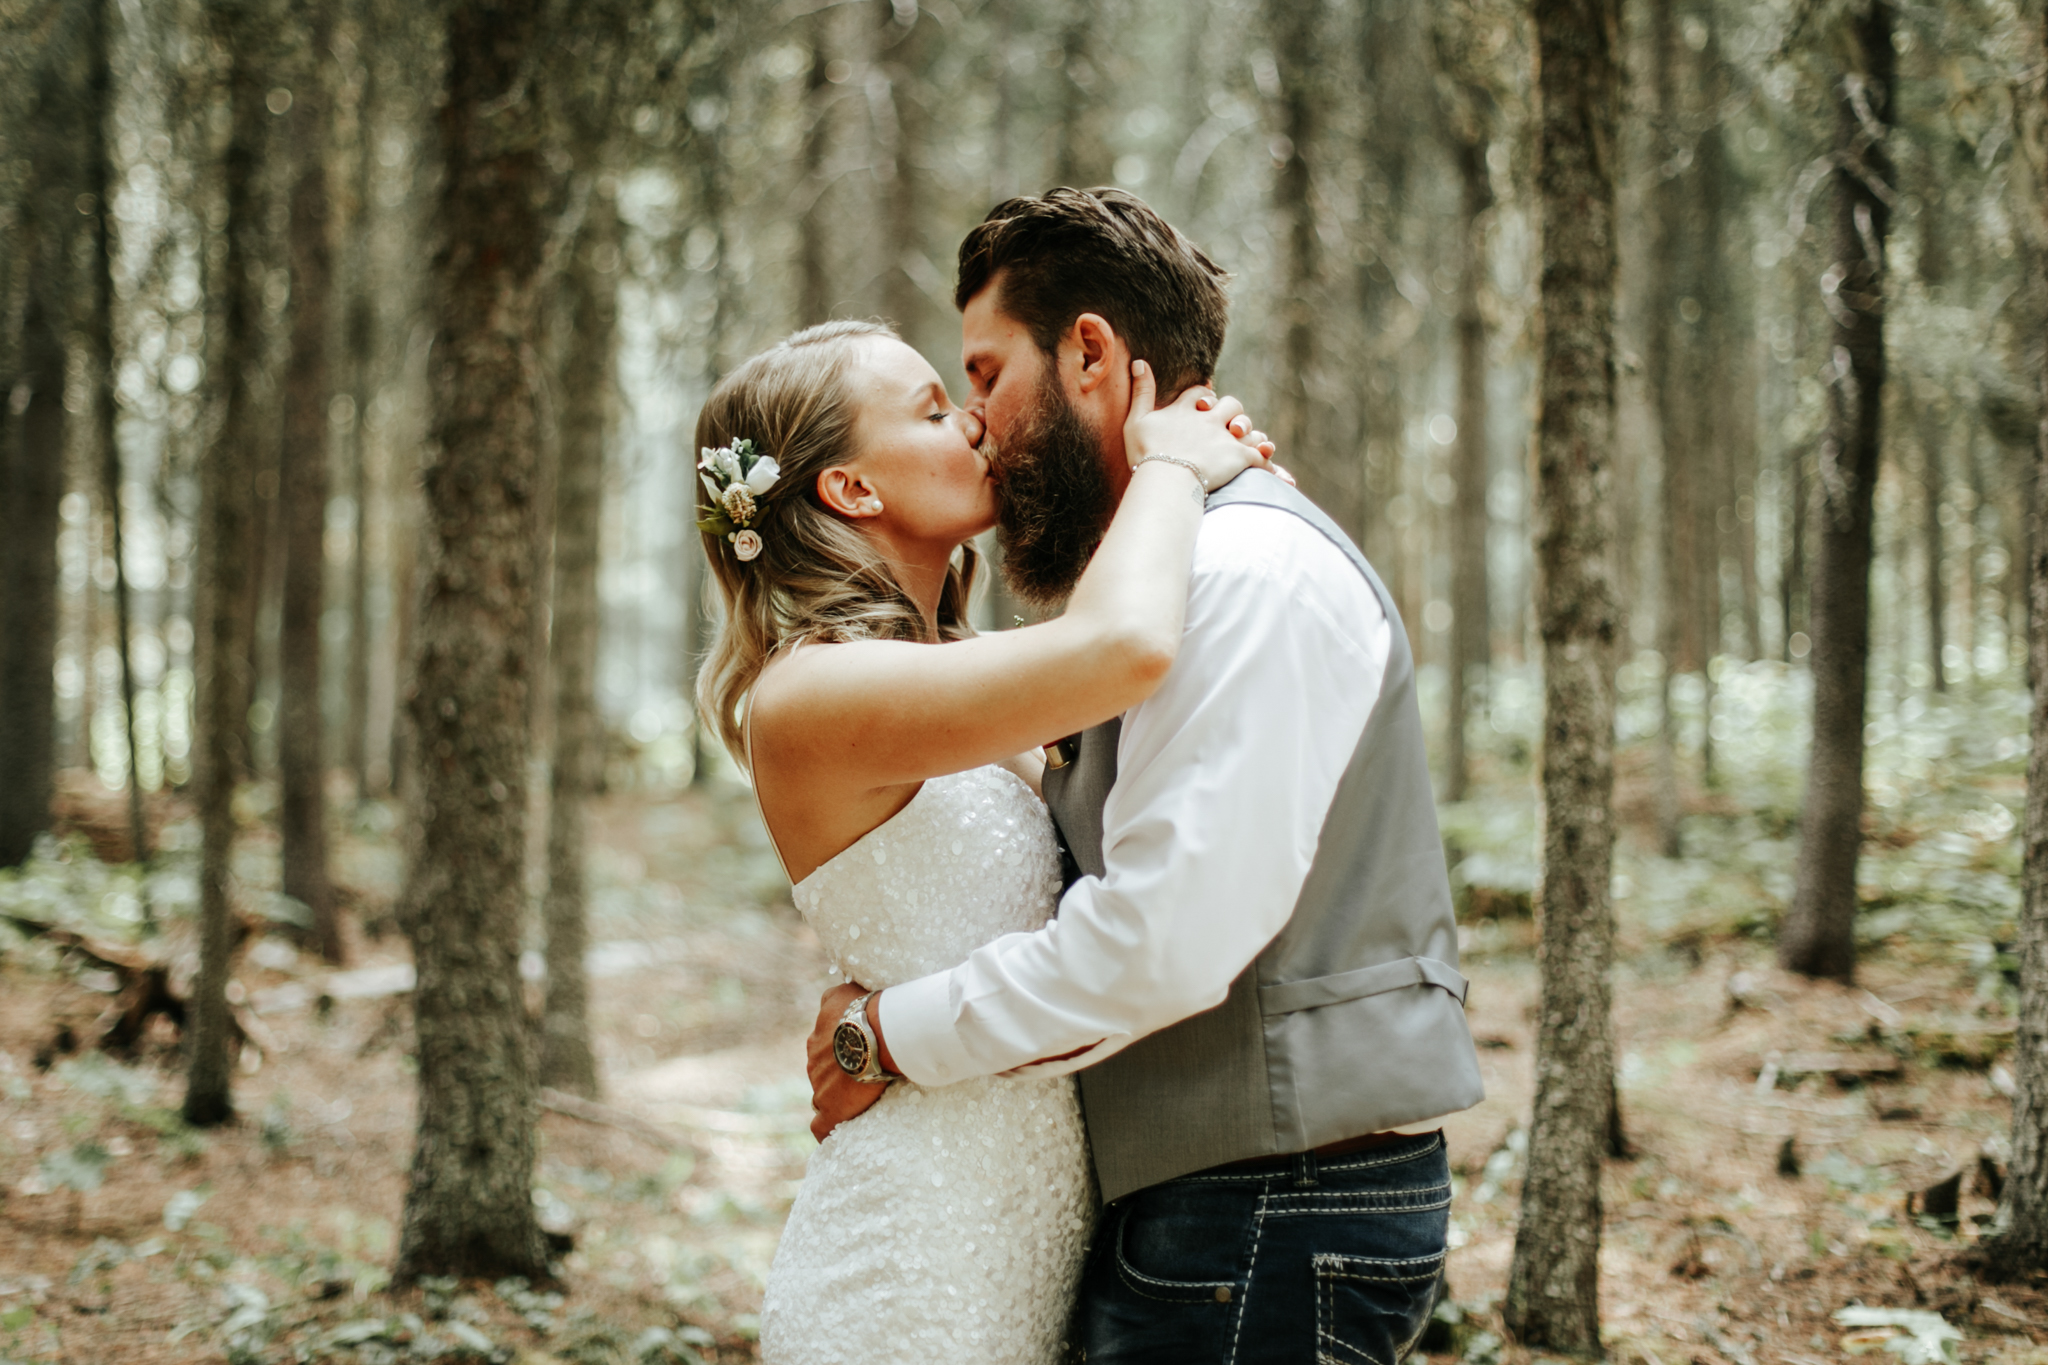 castle-mountain-wedding-photographer-love-and-be-loved-photography-lethbridge-pincher-creek-crowsnest-pass-yannick-rylee-photo-image-picture-151.jpg